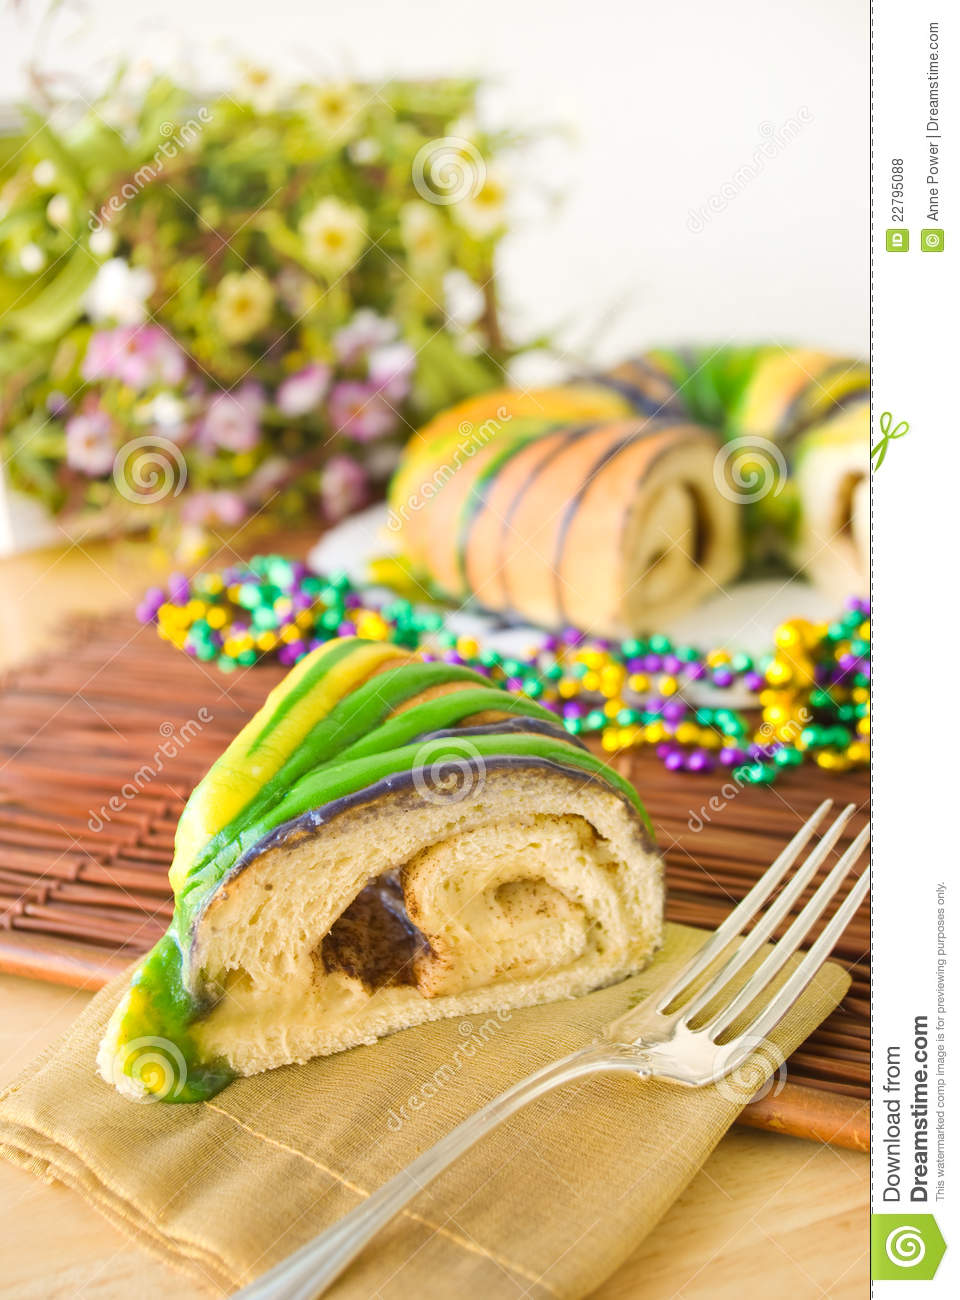 Slice Of Traditional New Orleans Style King Cake To Celebrate Mardi